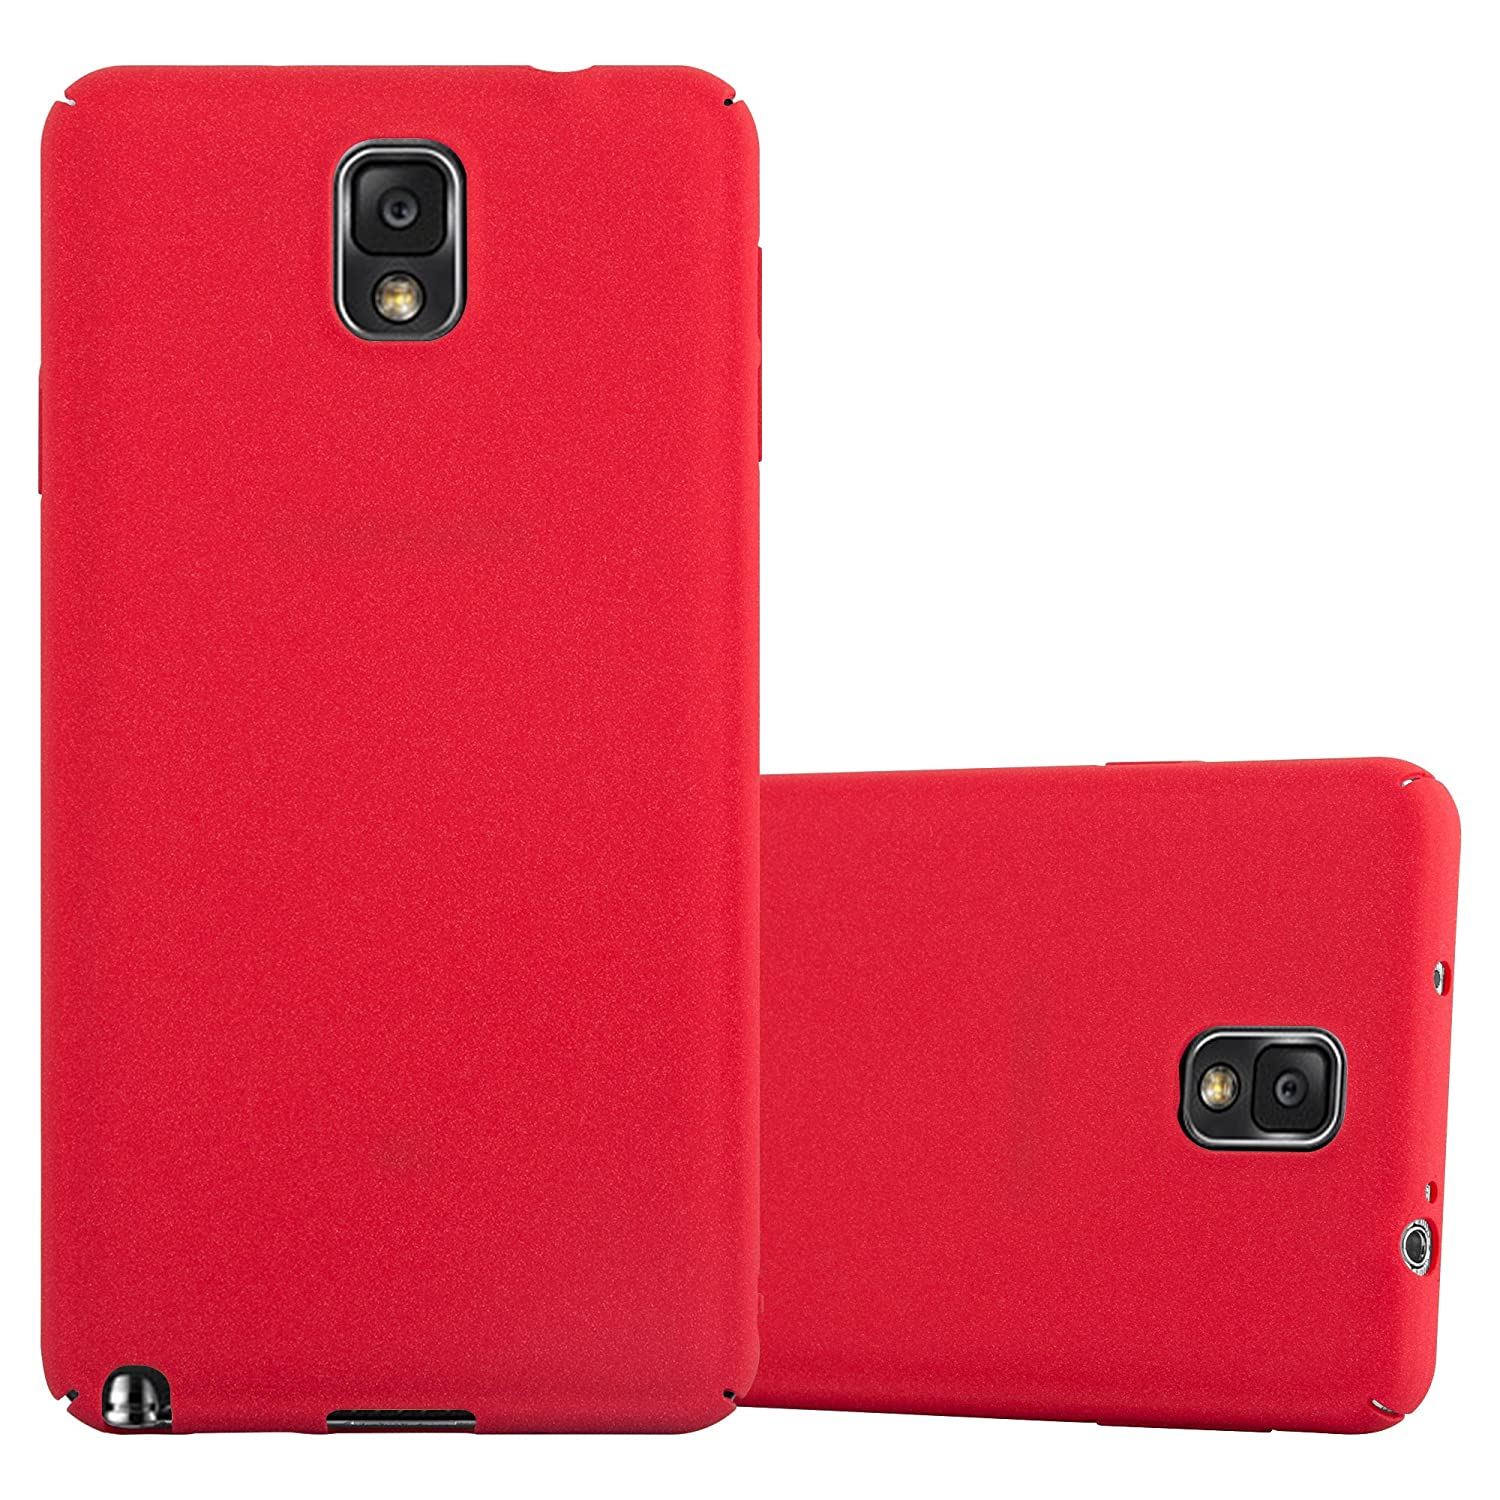 Cadorabo Case Works with Samsung Galaxy Note 3 in Frosty RED – Shockproof and Scratch Resistent Plastic Hard Cover – Ultra Slim Protective Shell ...